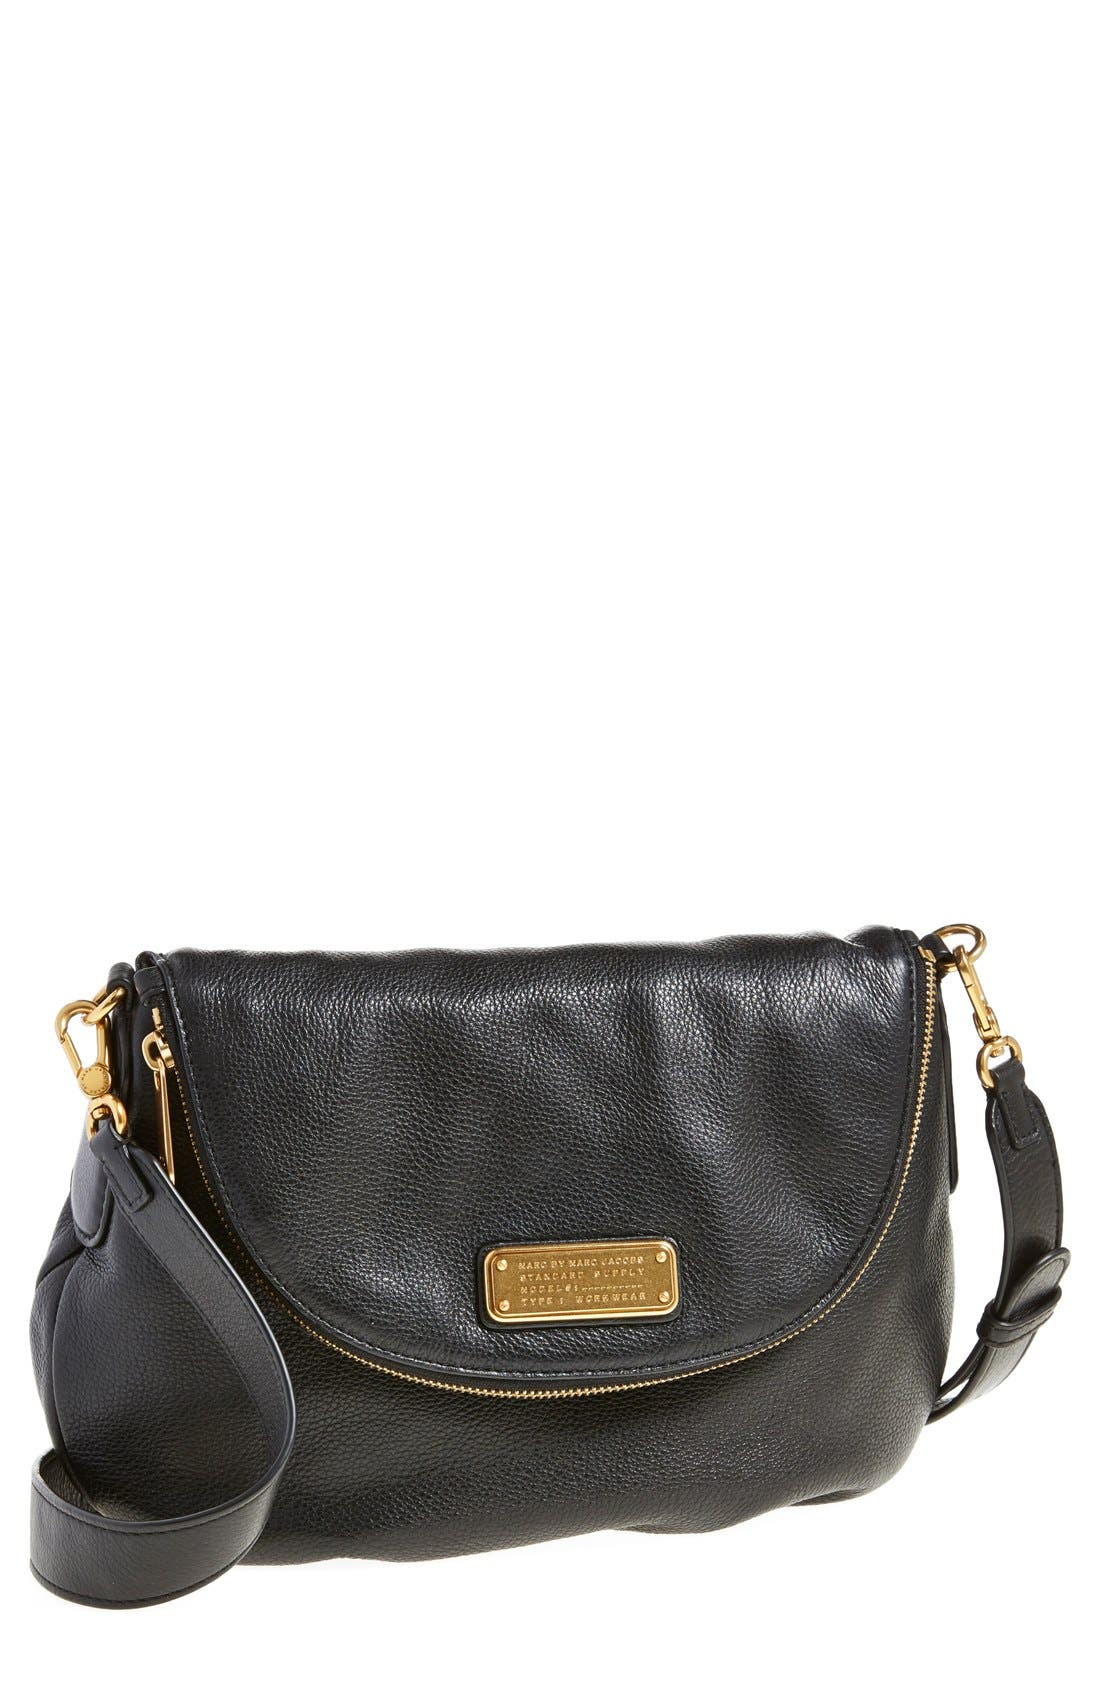 MARC BY MARC JACOBS 'New Q - Natasha' Crossbody Bag,                             Main thumbnail 1, color,                             Black